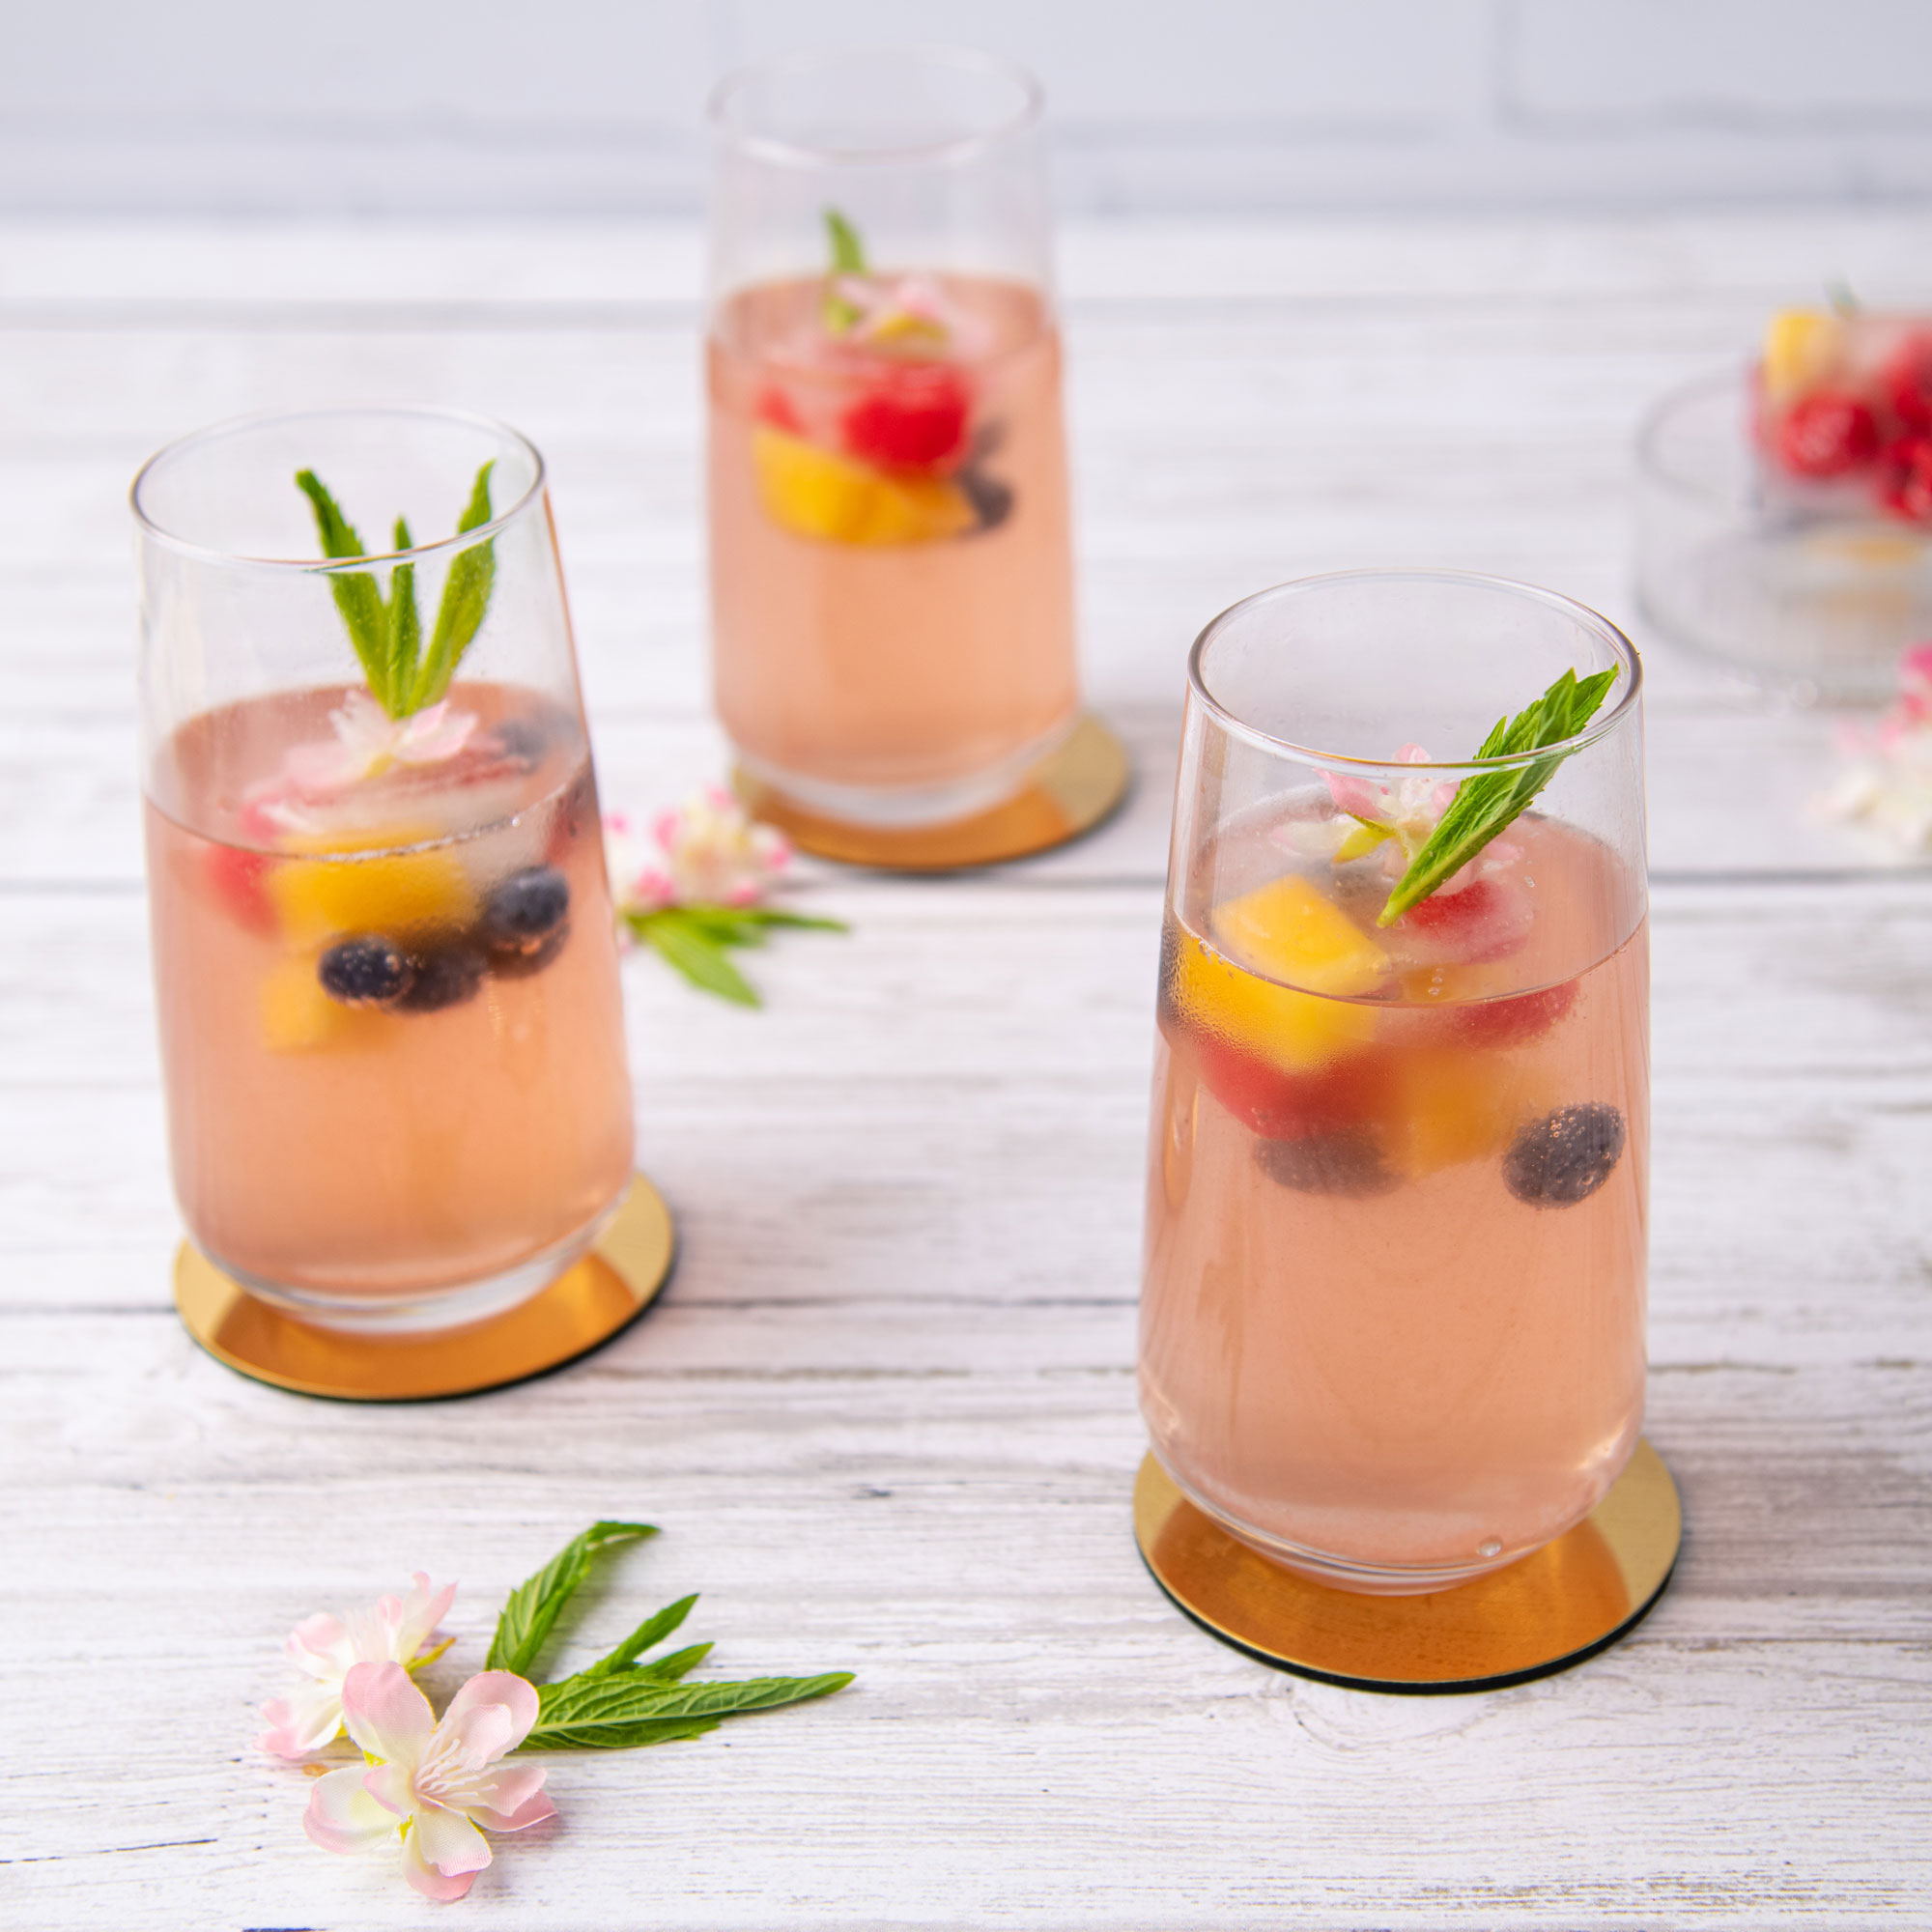 Calypso® Mango and Perfection Blueberry Gin & Tonic